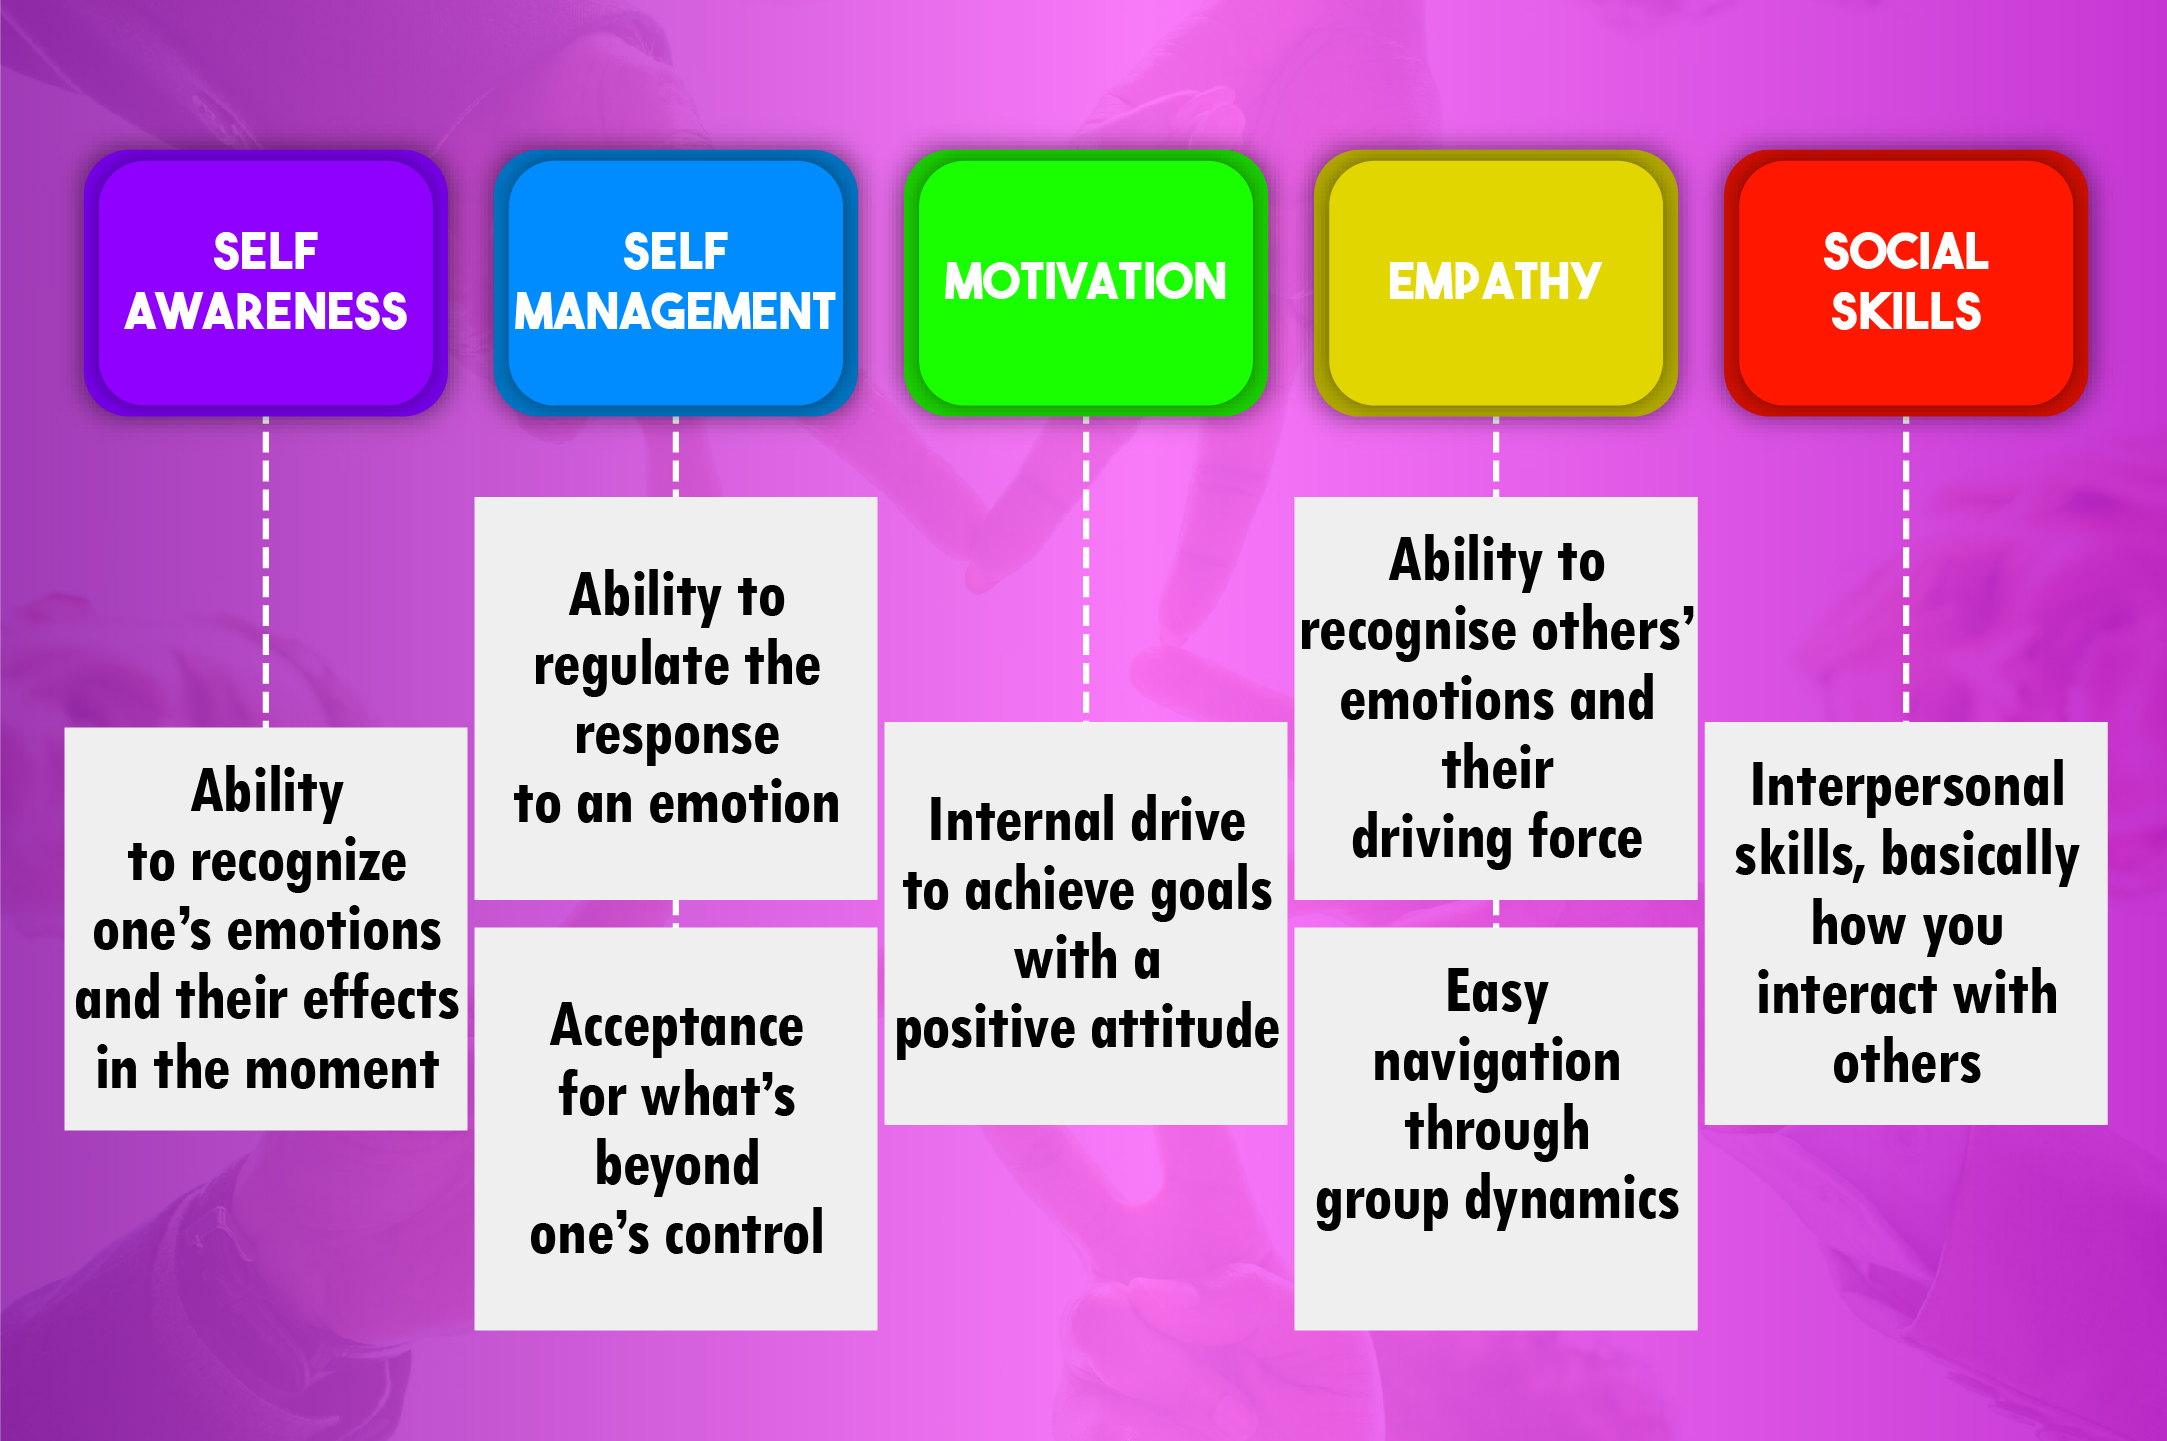 Social Emotional Intelligence Is >> Why Is Emotional Intelligence Important For Social Media